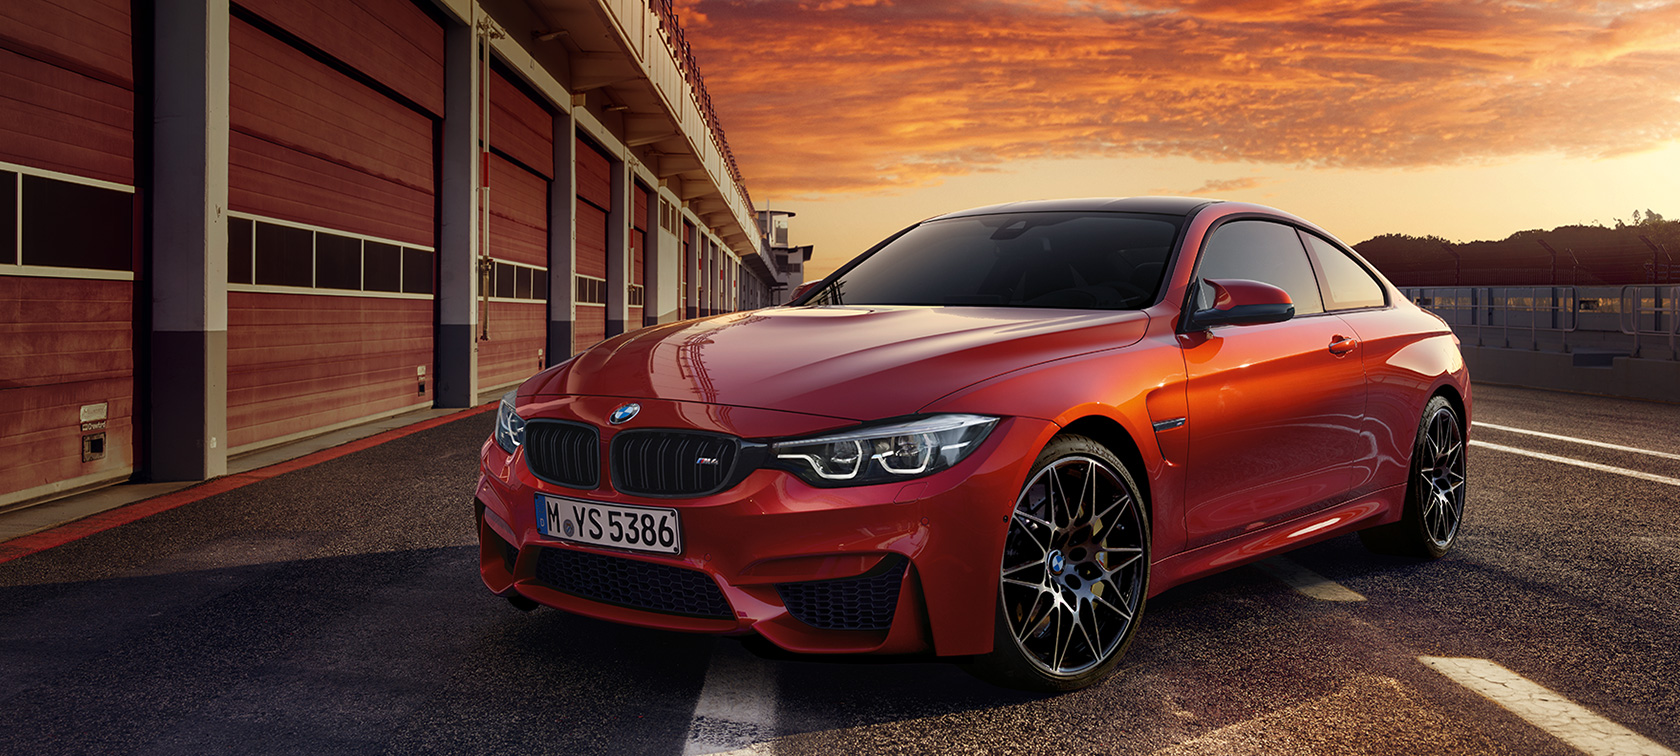 Bmw M4 Coupe >> Bmw M4 Coupe Style And Design Bmw Canada